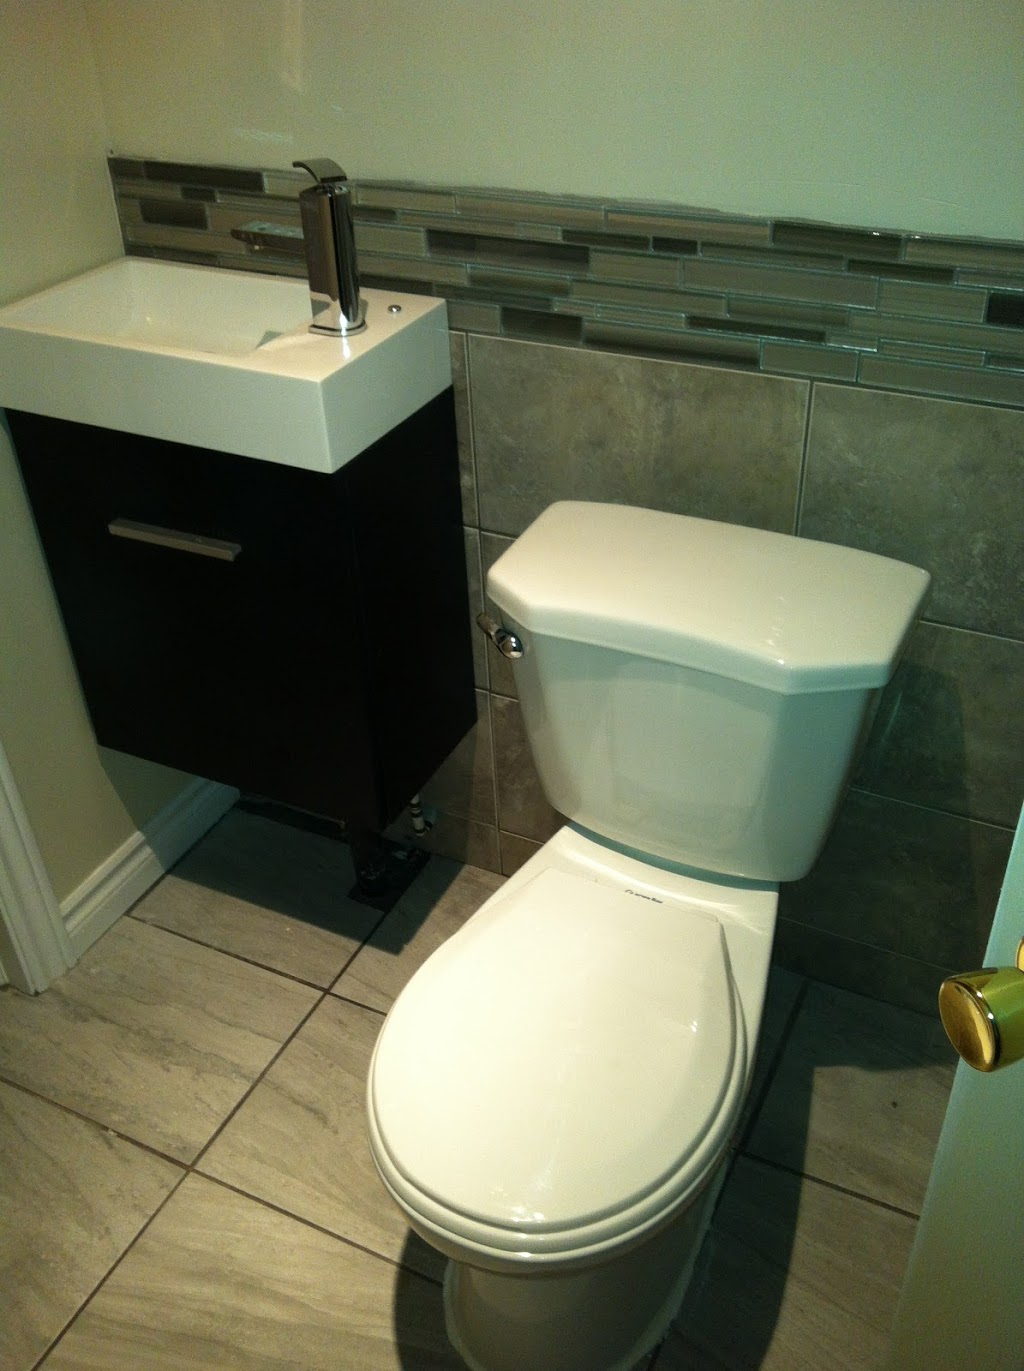 ACCL Plumbing | home goods store | 124 Wilson Rd S, Oshawa, ON L1H 6C1, Canada | 9054485909 OR +1 905-448-5909